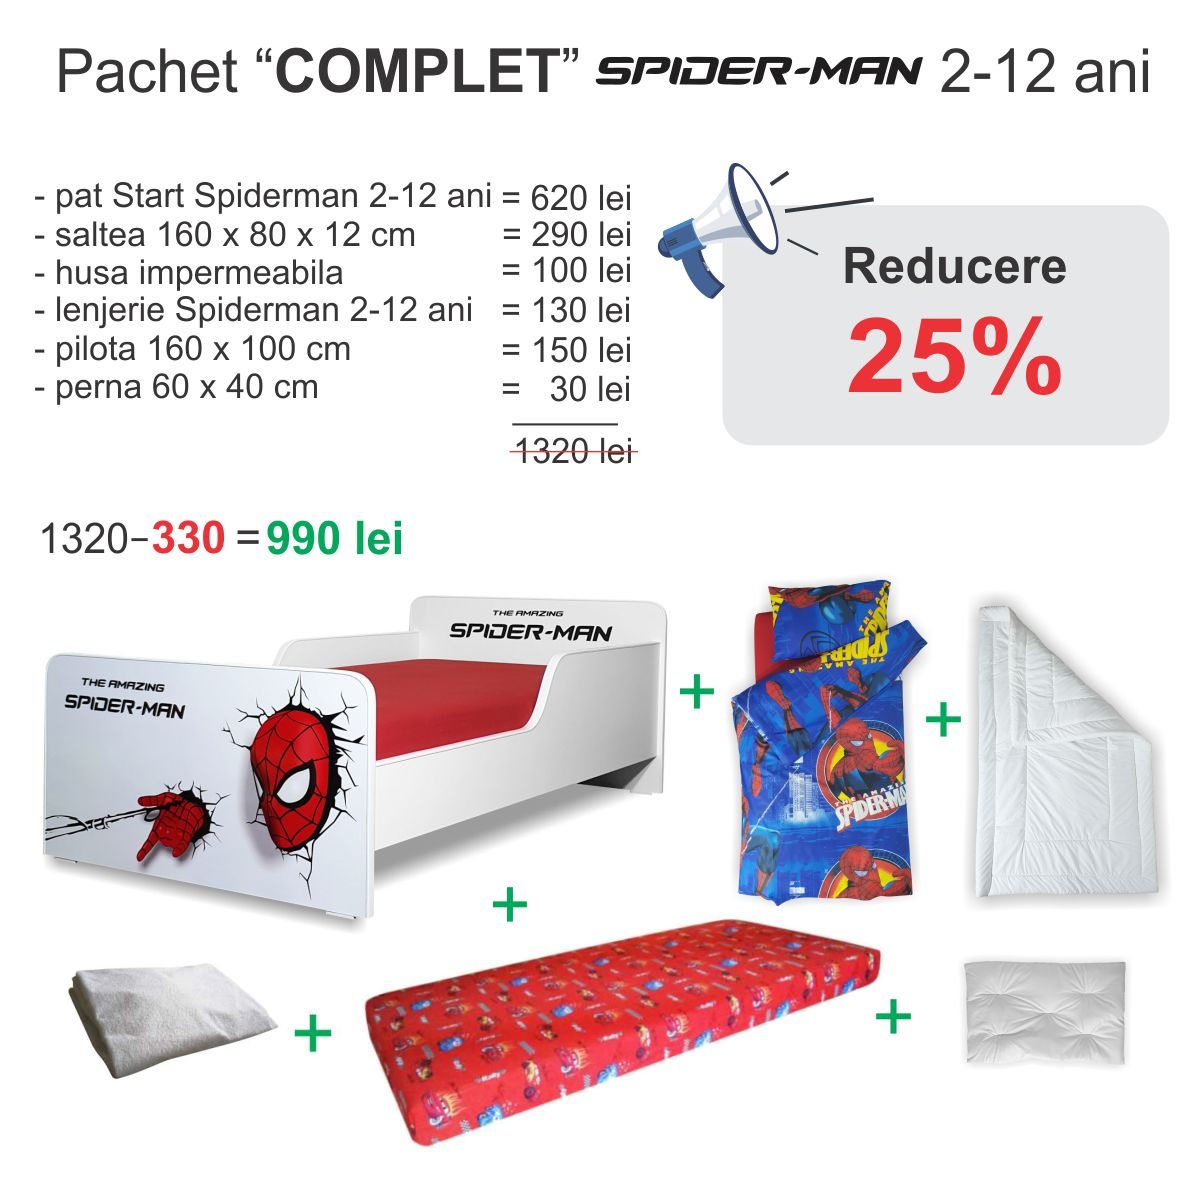 Pachet Promo Complet Start Spiderman 2-12 ani